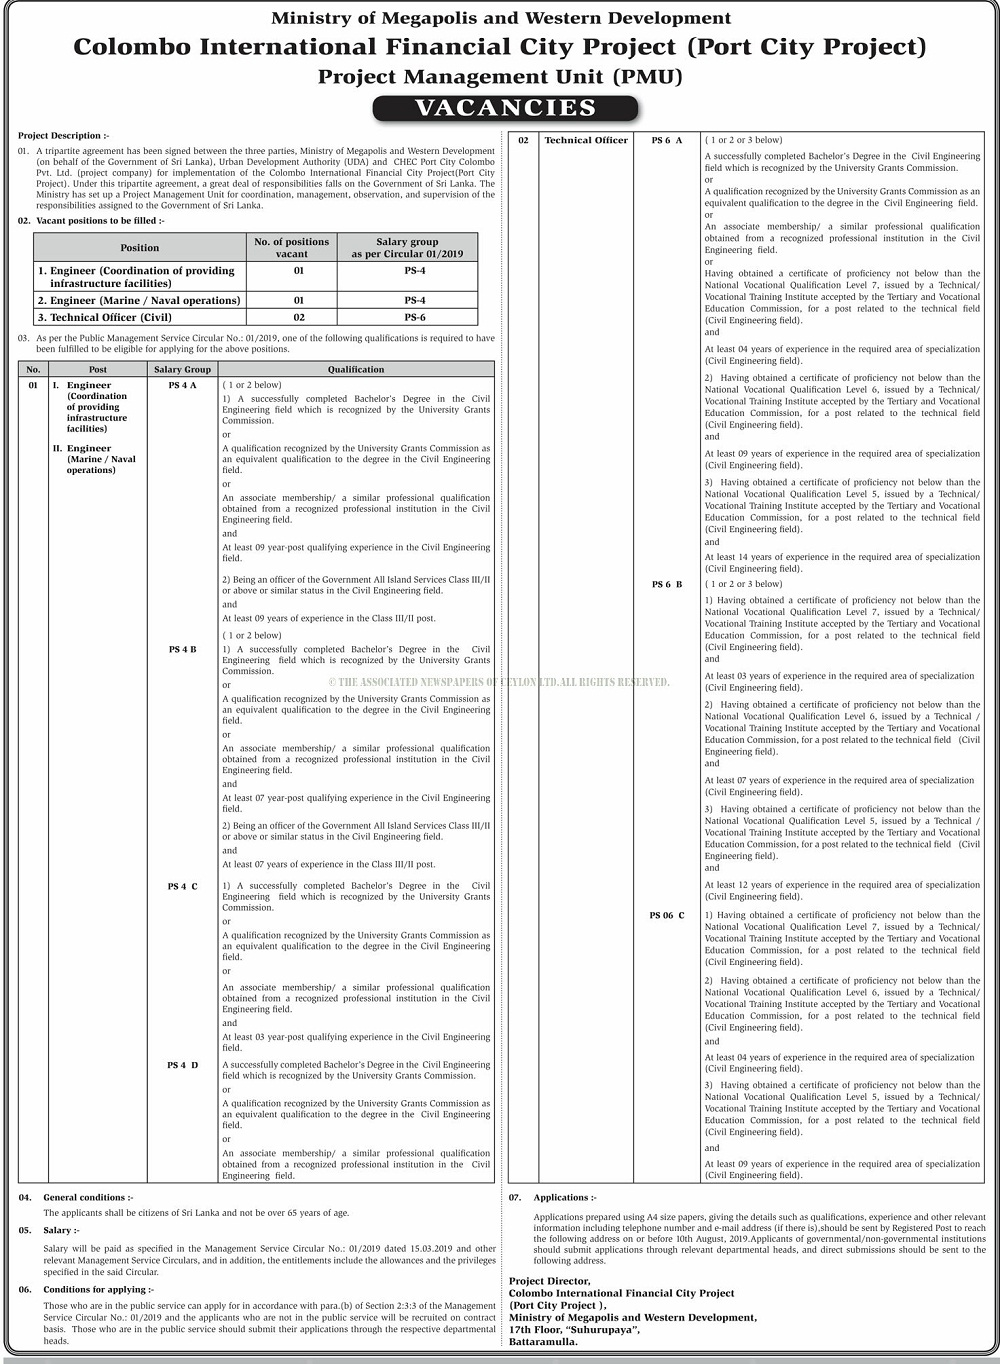 Government Job Vacancies 2019, Government job information, Vacancies at Government Ministries, Vacancies at Government Departments, Vacancies at Government Boards, Vacancies at Government Universities, Vacancies at Government Banks and all government related Jobs. Find Latest Government job information, Gazettes related to Government jobs. Latest government job information, Government Jobs related to Ministries Department Boards Universities Banks and all government related Jobs job information job cancellation notices, Job information notifications, Government job based examination information, Government Job Vacancies 2019